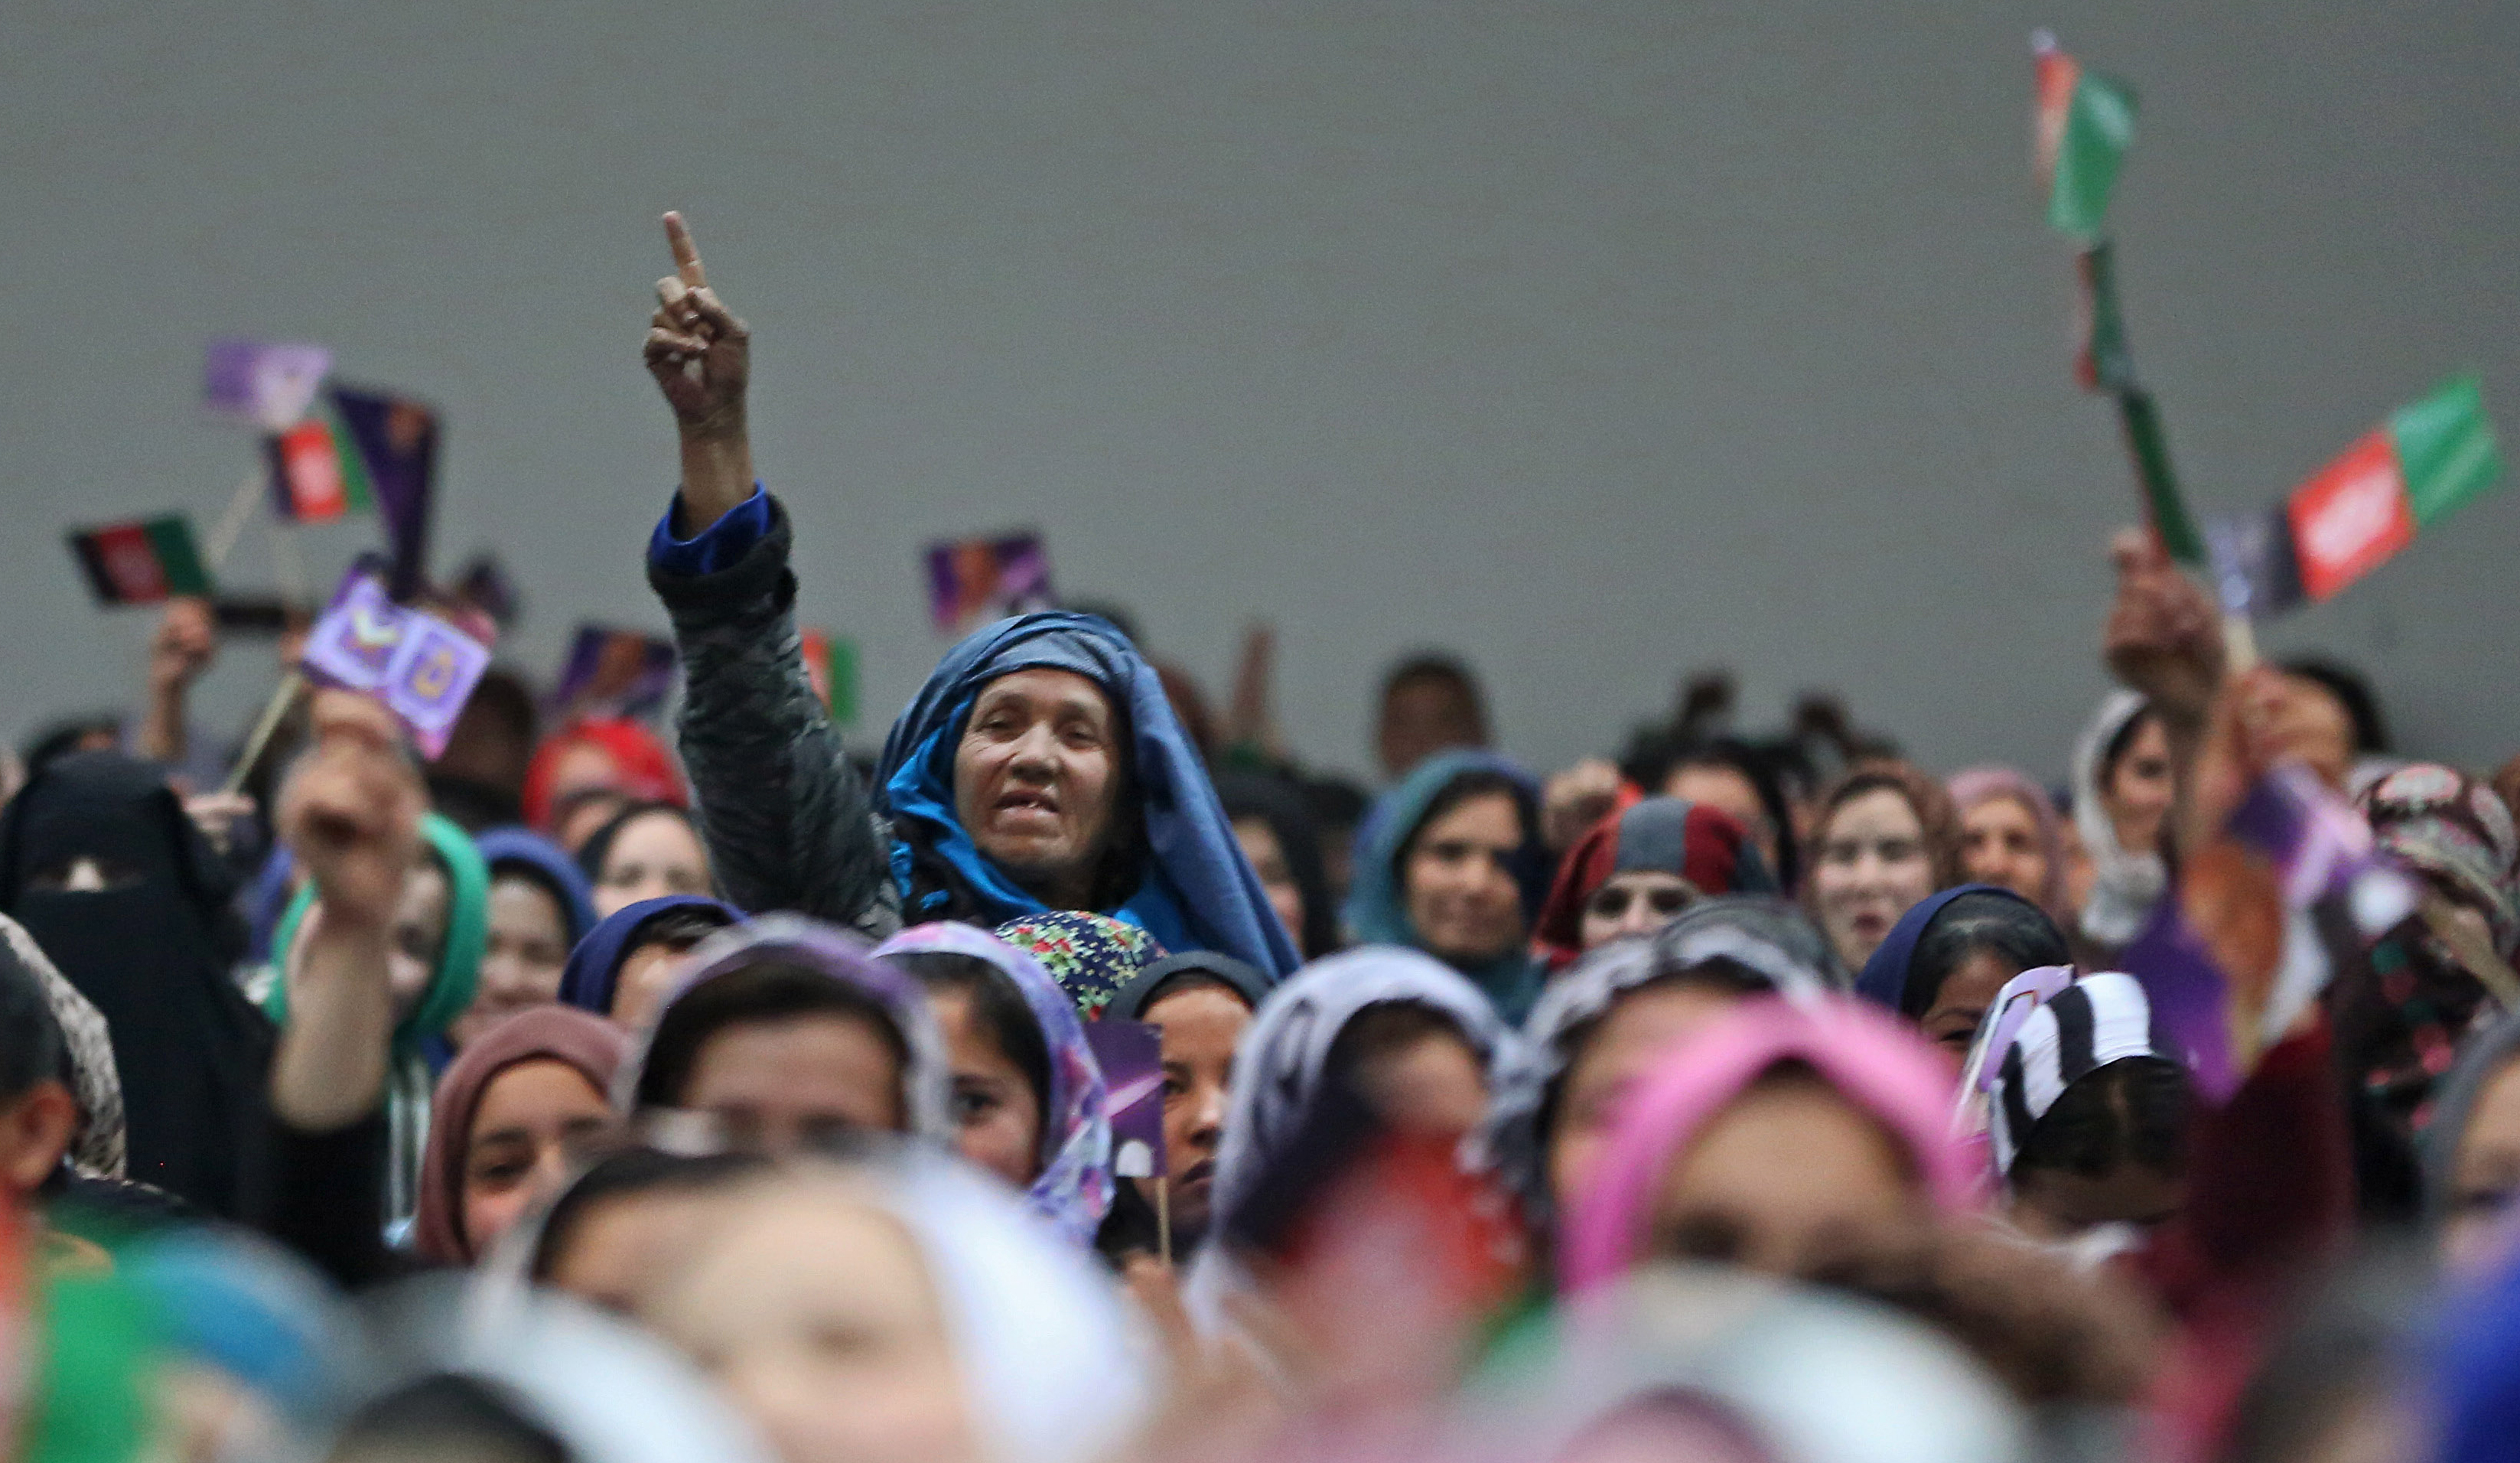 Afghan candidate supporters